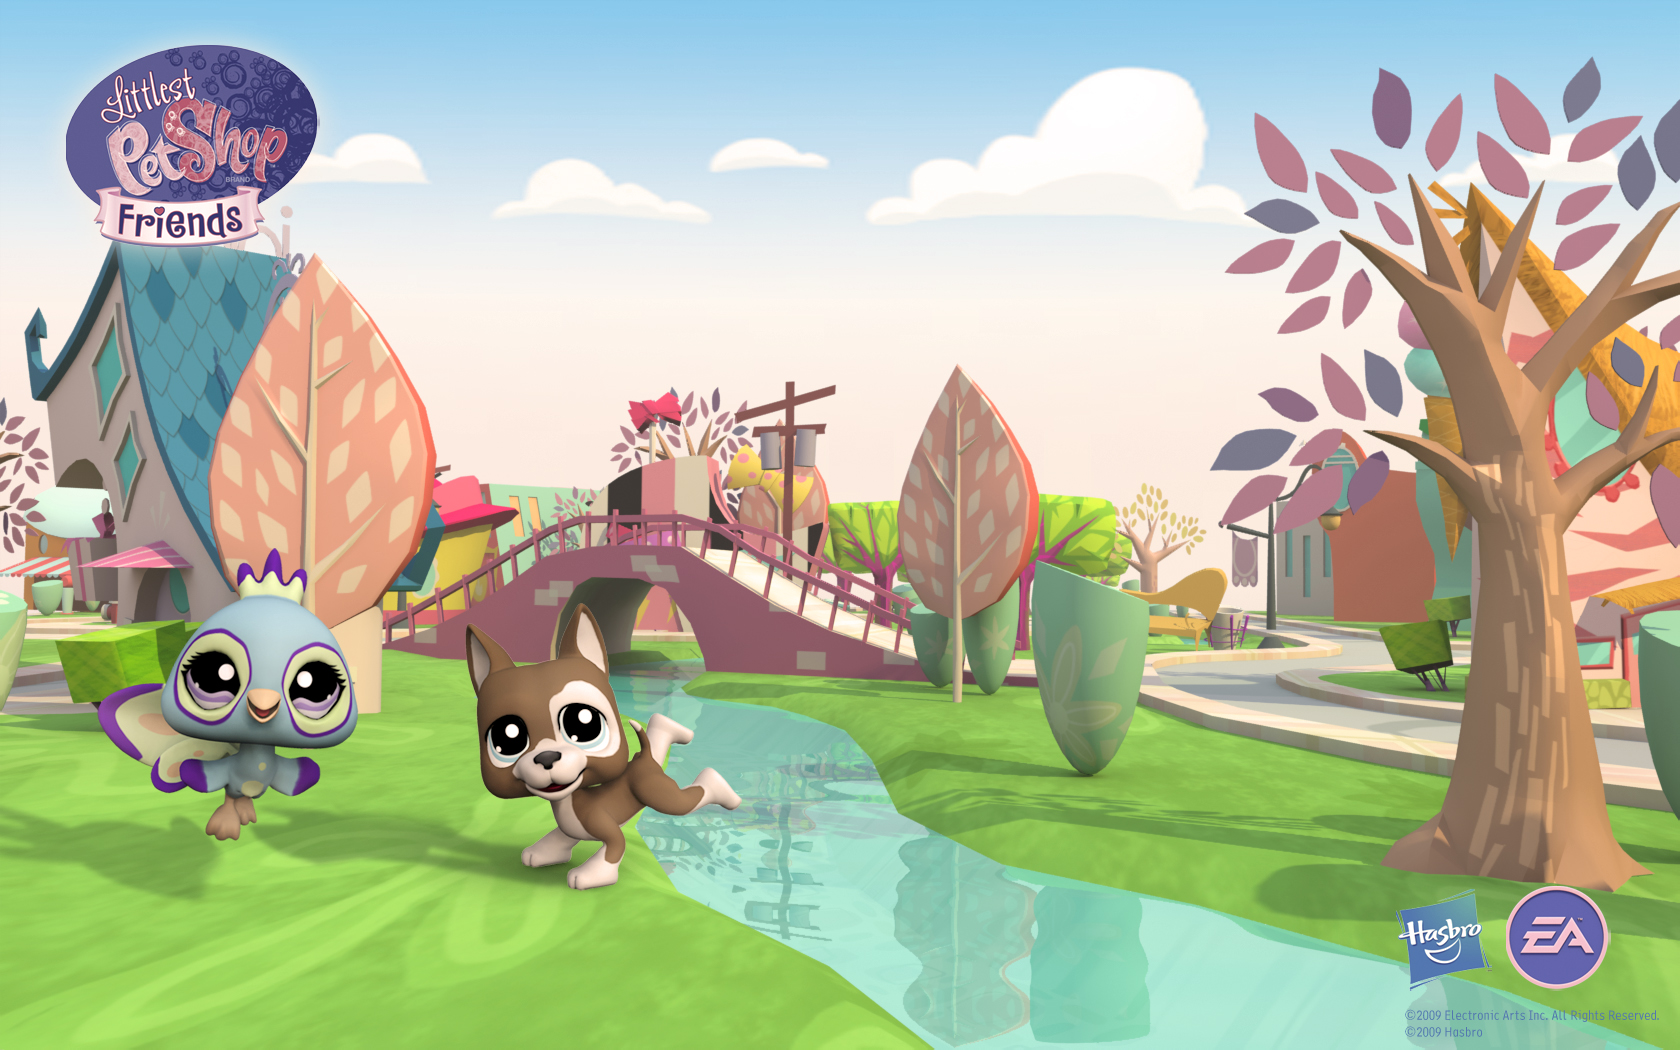 Littlest pet shop wallpaper desktop wallpapersafari - Image petshop ...